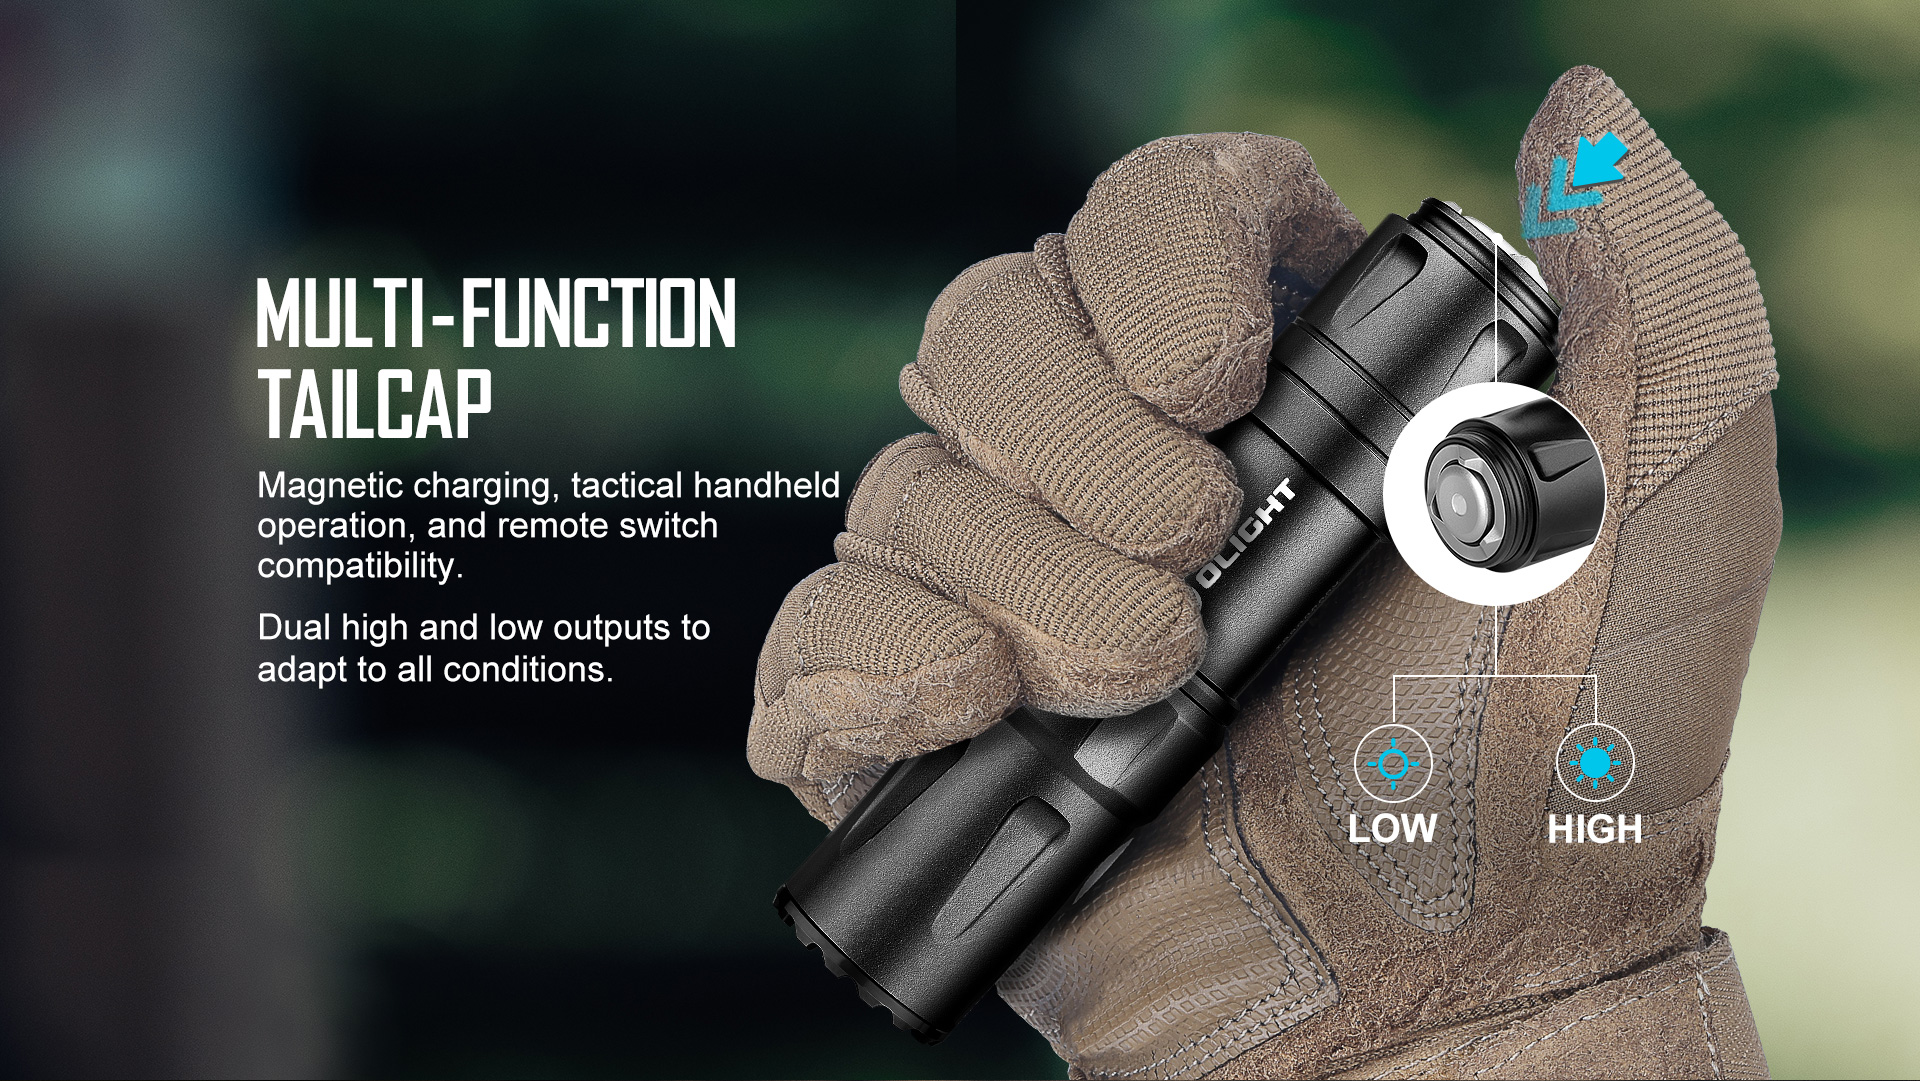 Rechargeable tactical LED flashlight with multifunctional tail cap